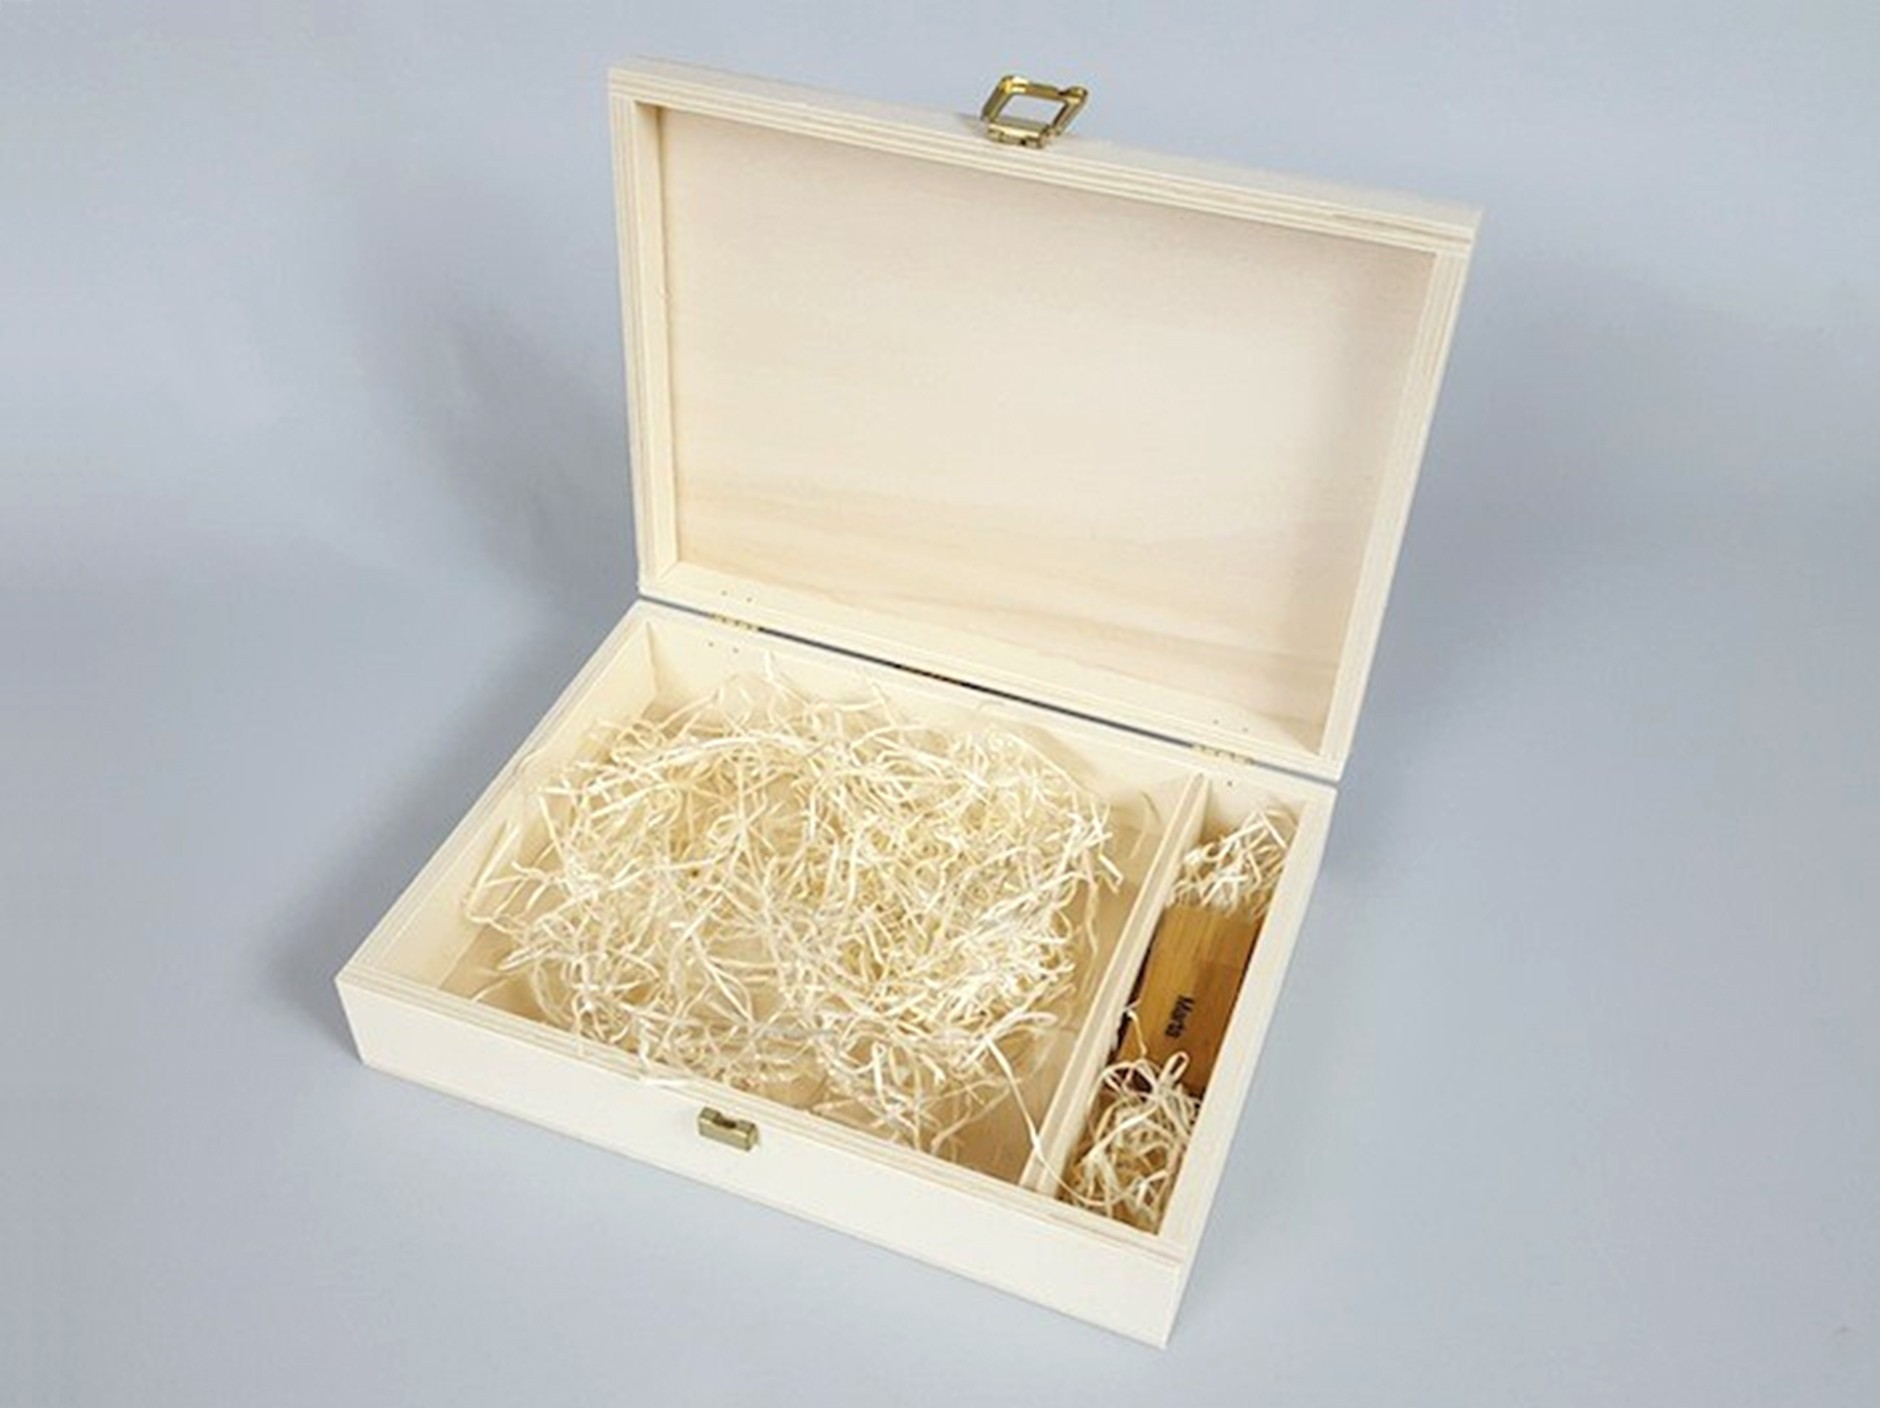 Wooden box 26x19x6 cm. with clasp and division Ref.P1454C6F